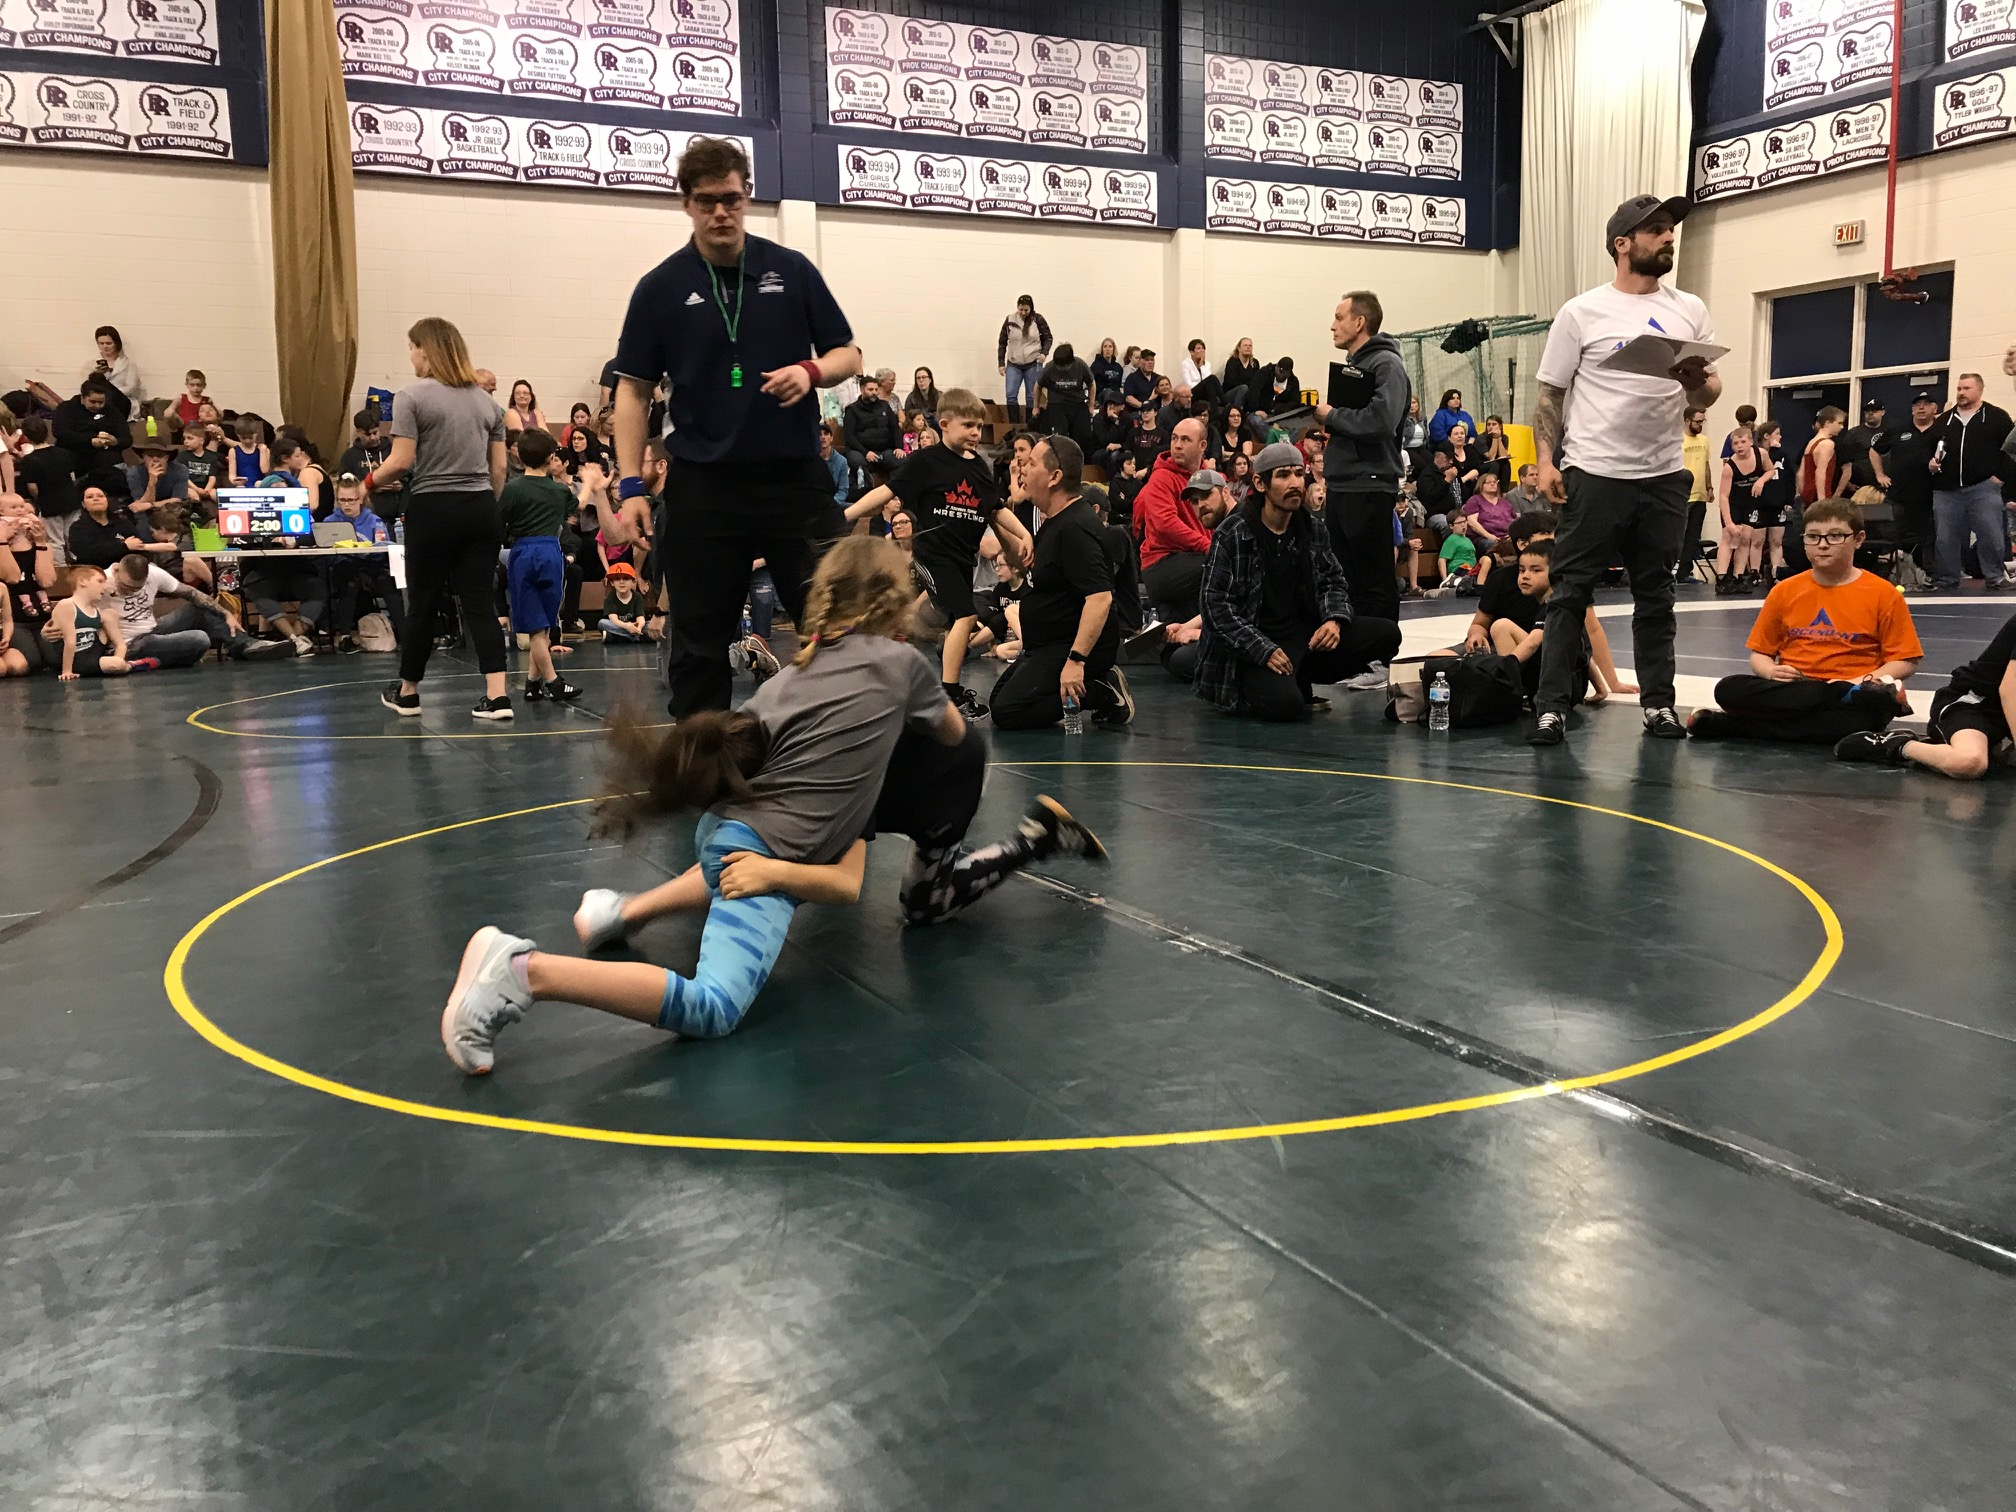 Rose Alexander (in the grey shirt) Grapples During a Hard Fought Match